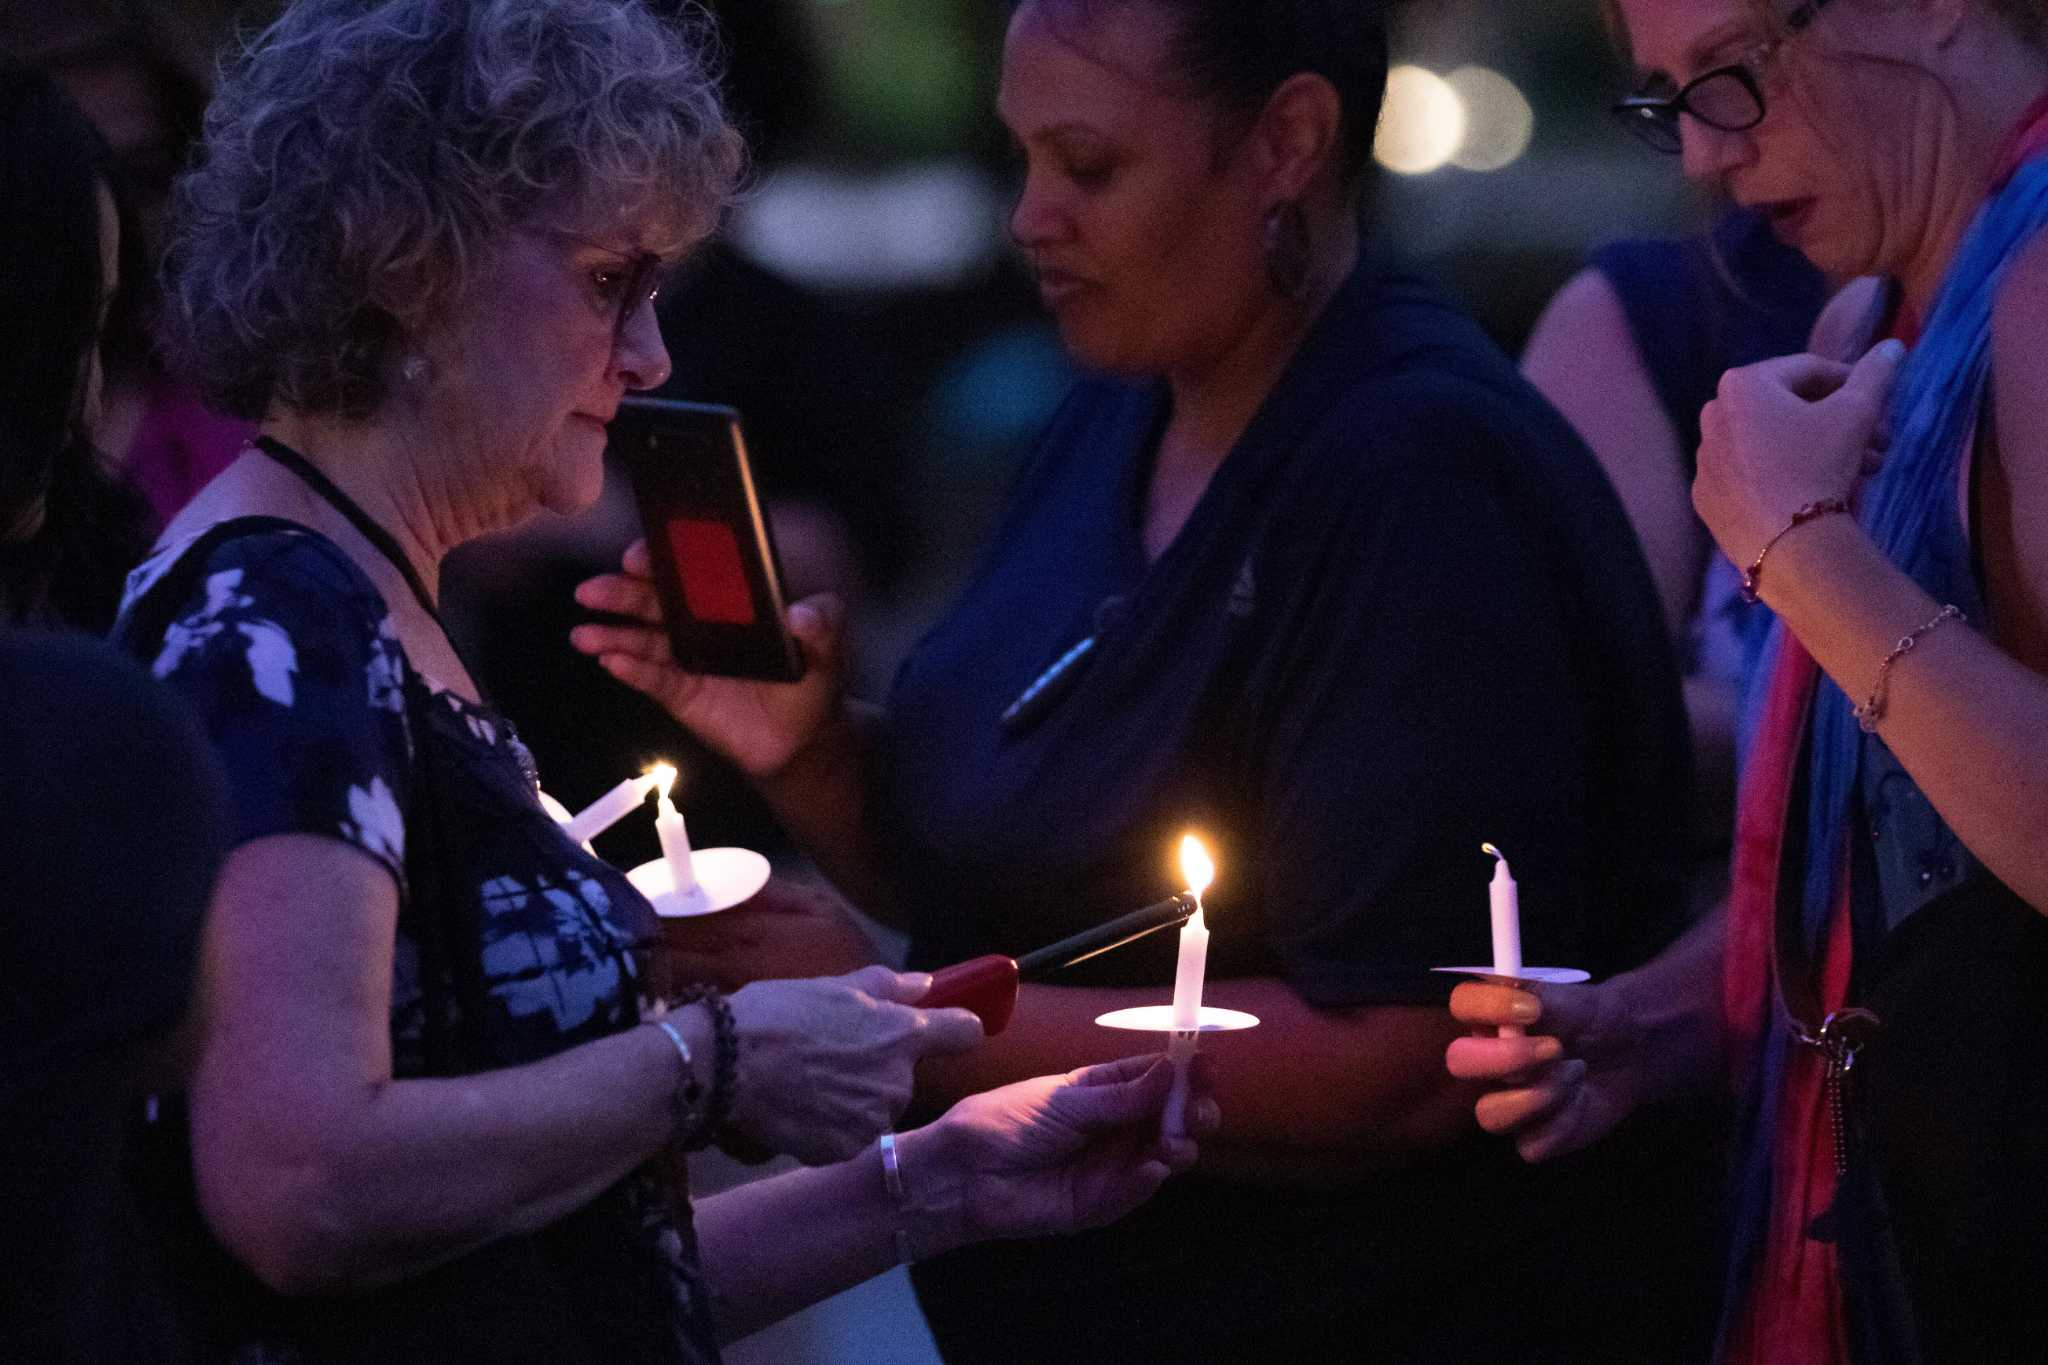 Advocates call for more support for victims of domestic violence